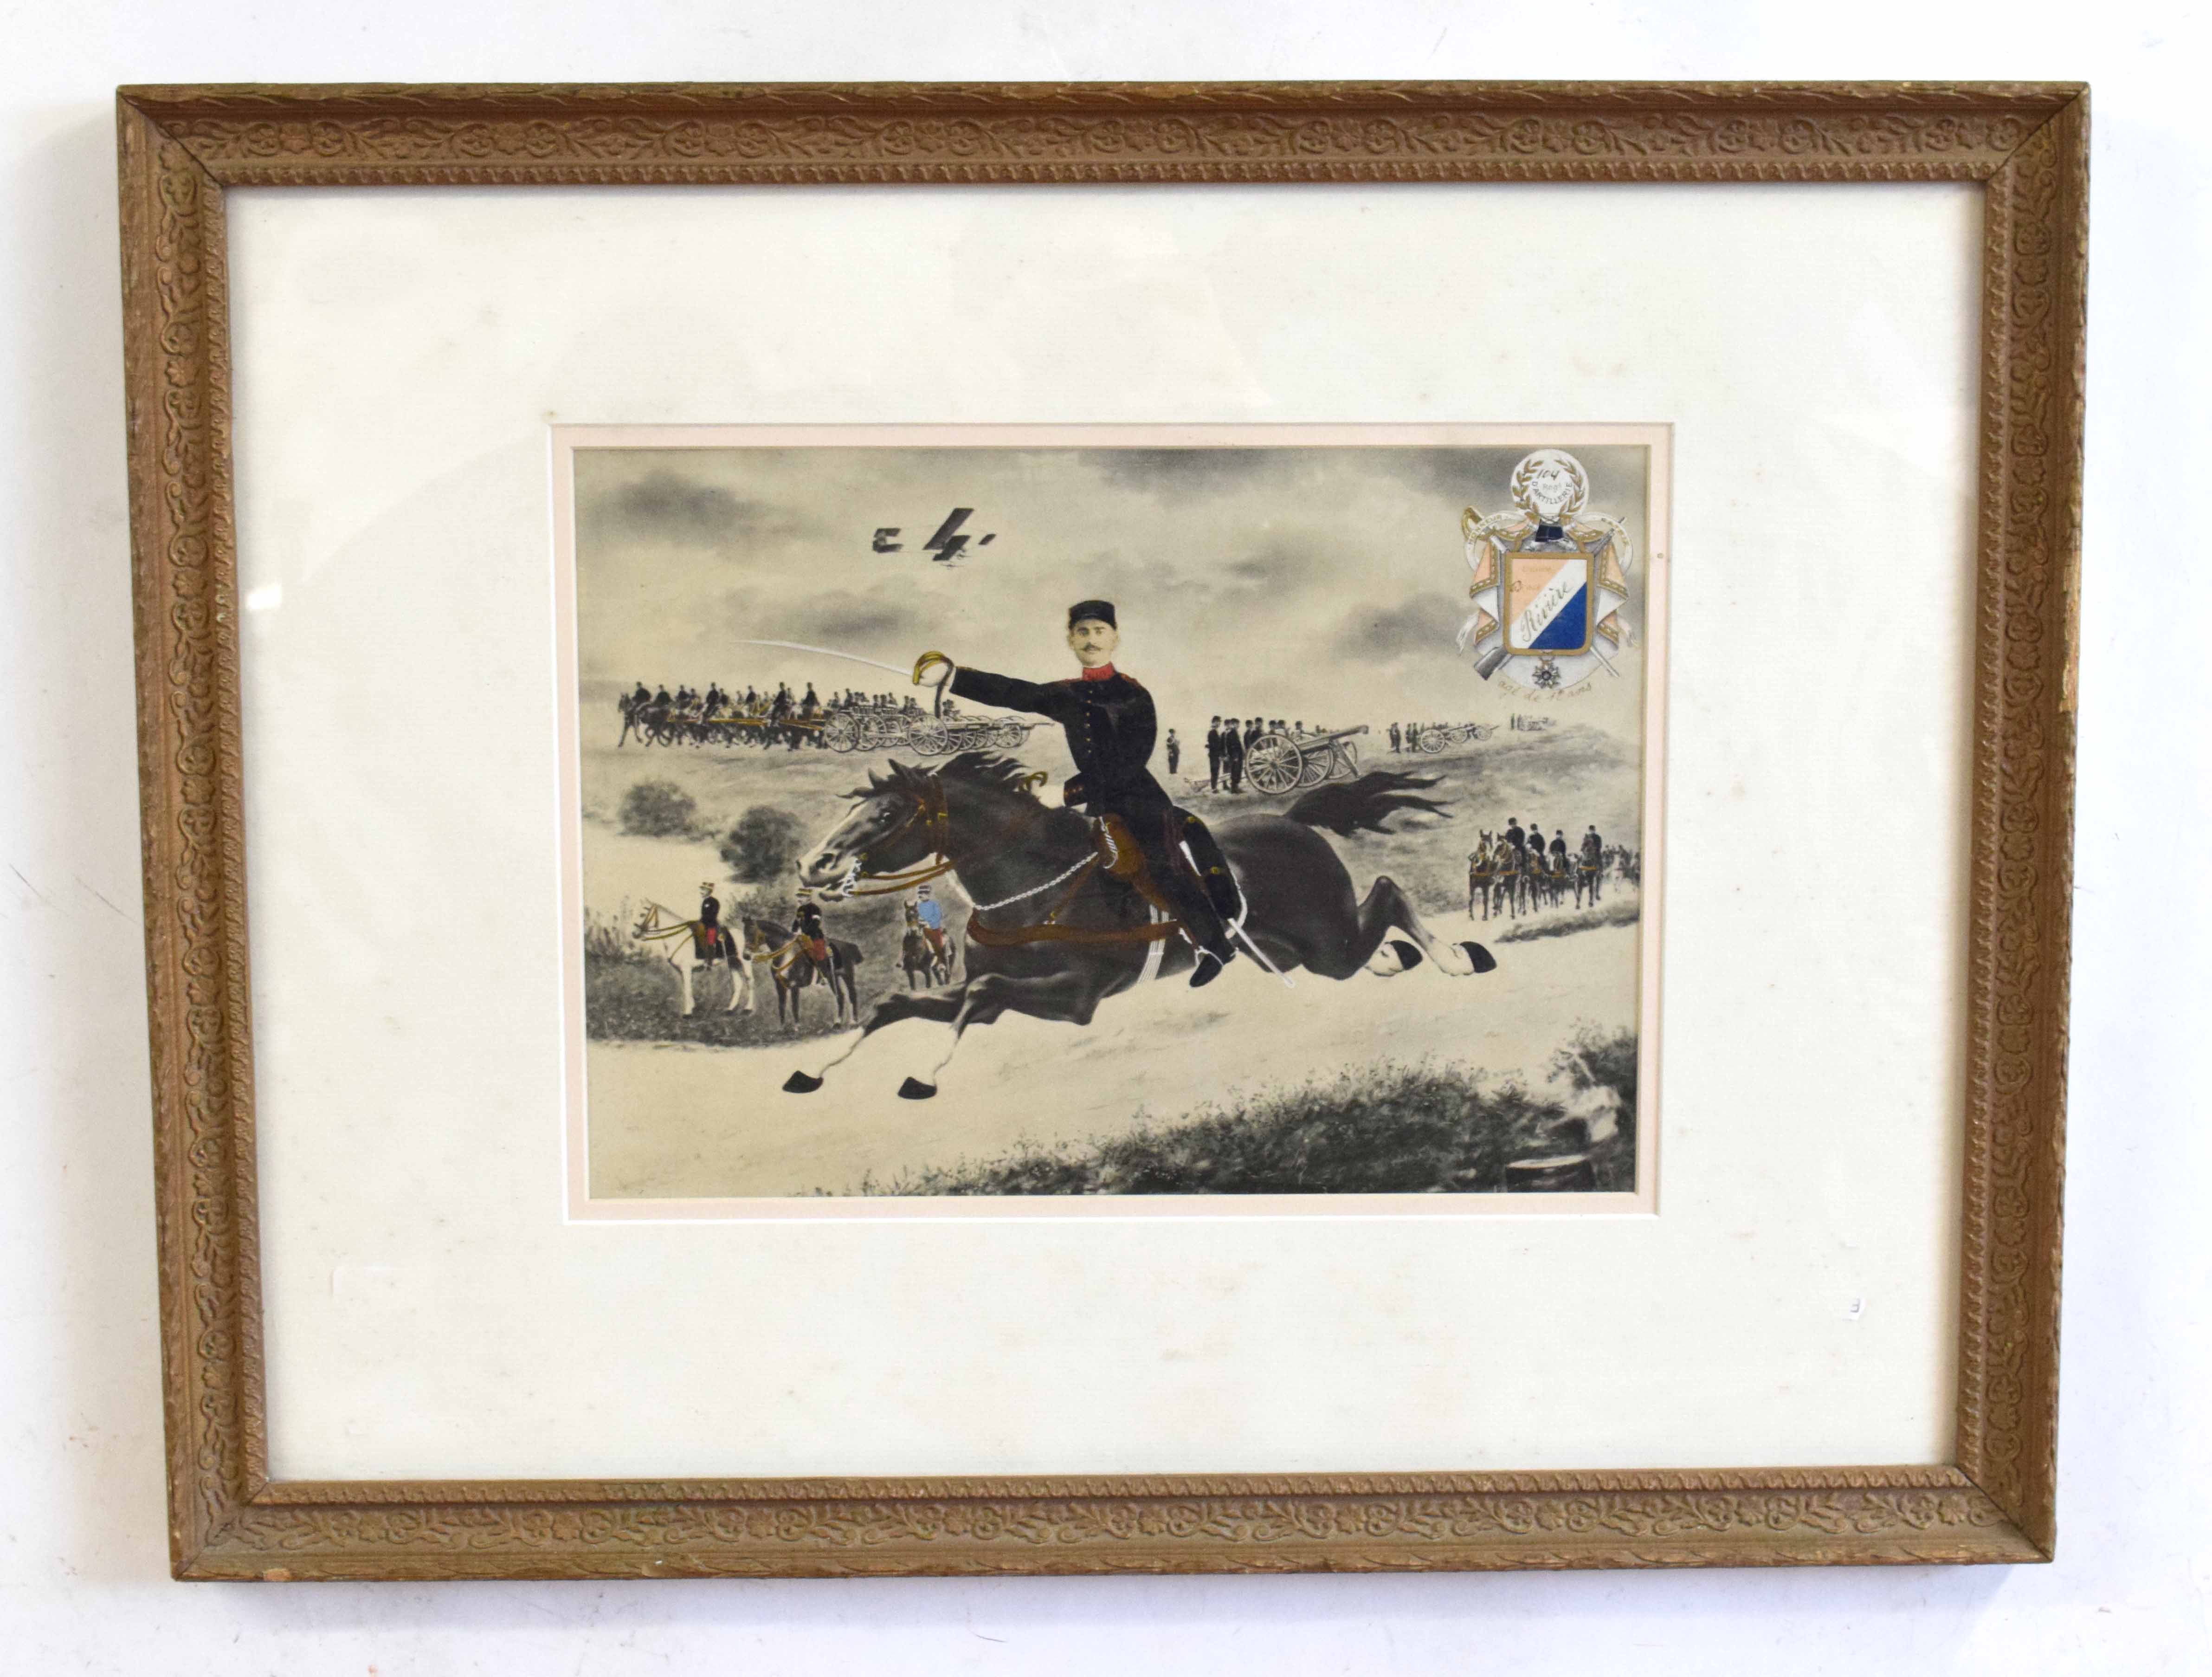 Early 20th century framed memorial scene of WWI to an 18 year old French soldier from the 63rd